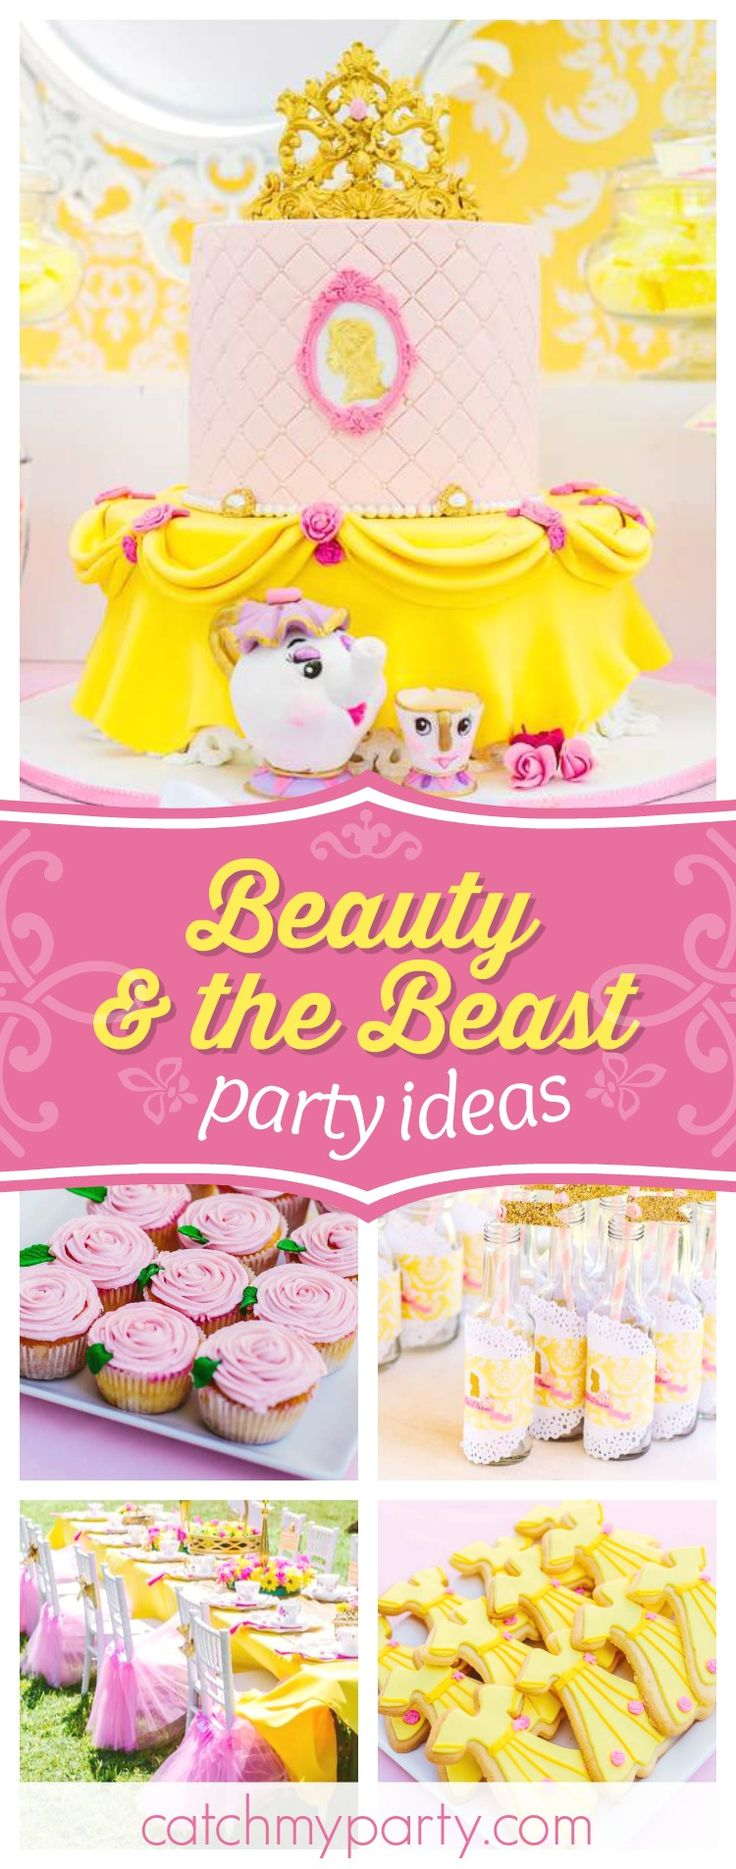 Don't miss this wonderful Beauty and the Beast birthday party! The birthday cake is stunning!! See more party ideas and share yours at CatchMyParty.com #princess #belle #beautyandthebeast